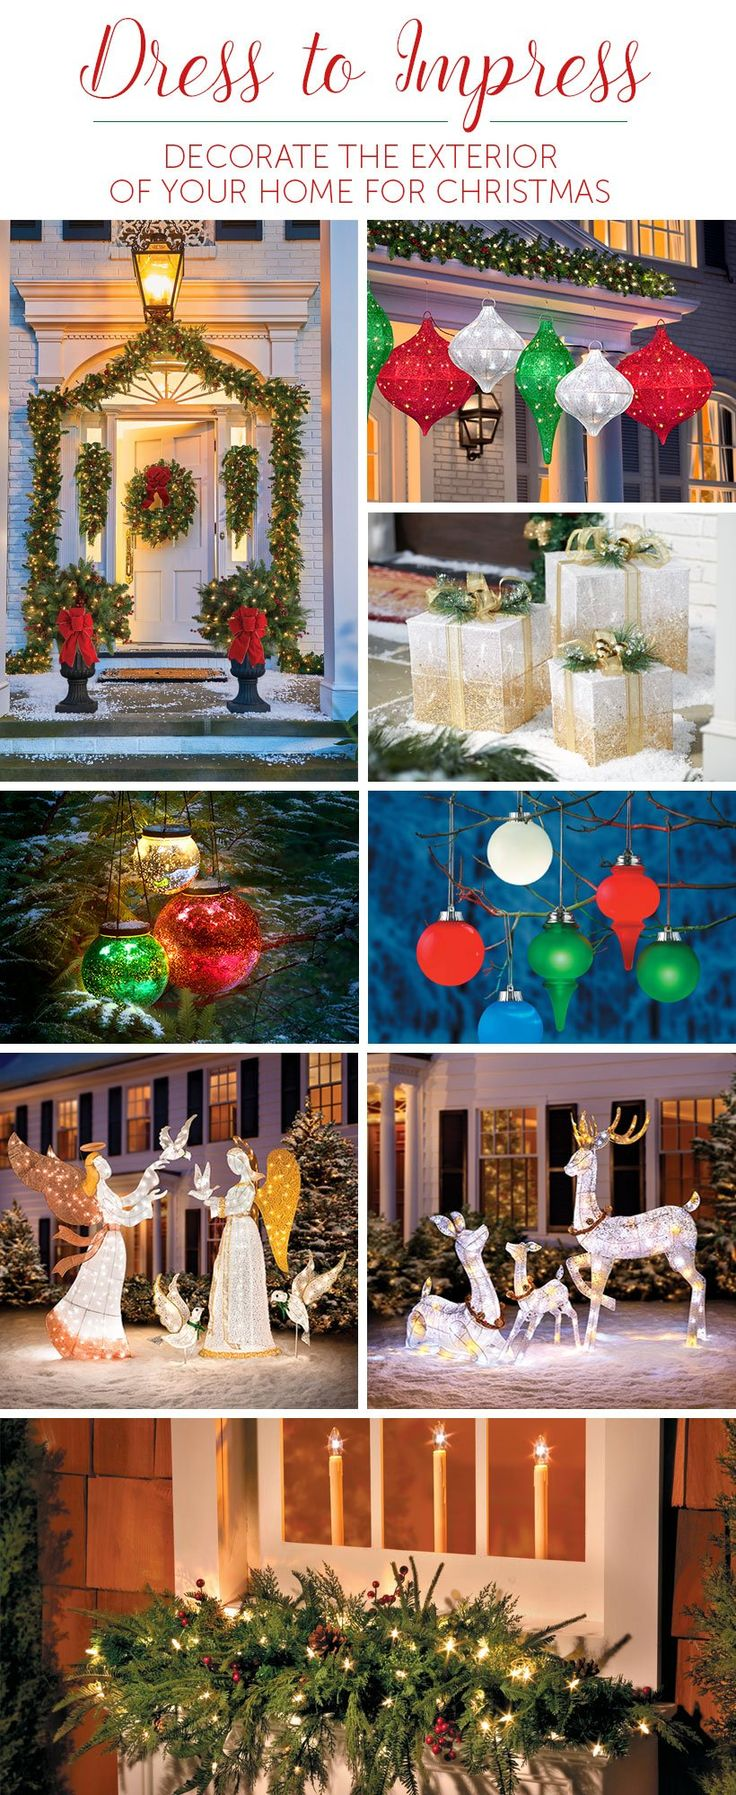 Show everyone your holiday spirit by lighting up your neighborhood with outside Christmas decor!